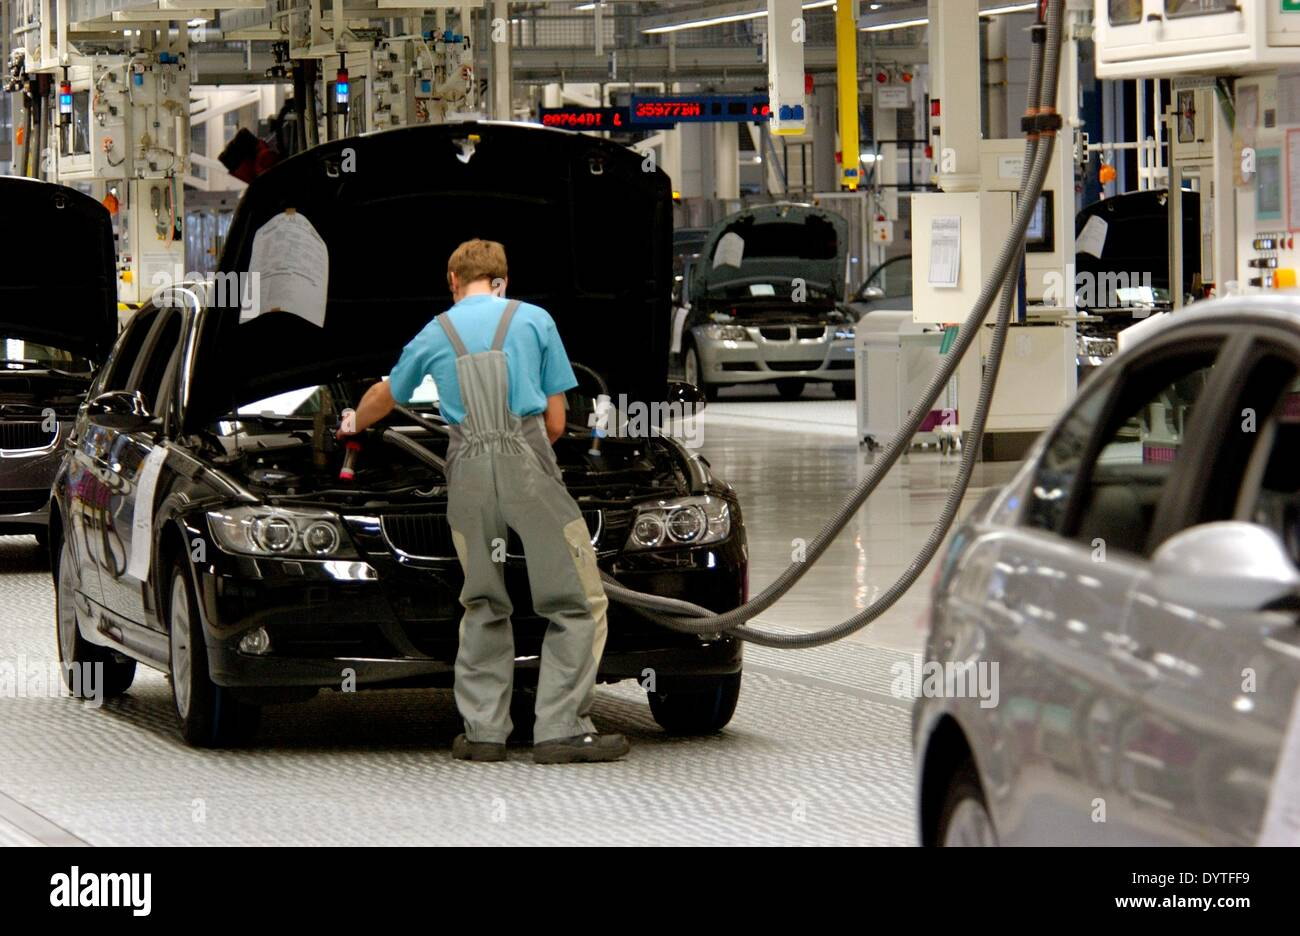 assembly bmw plant stockfotos assembly bmw plant bilder alamy. Black Bedroom Furniture Sets. Home Design Ideas